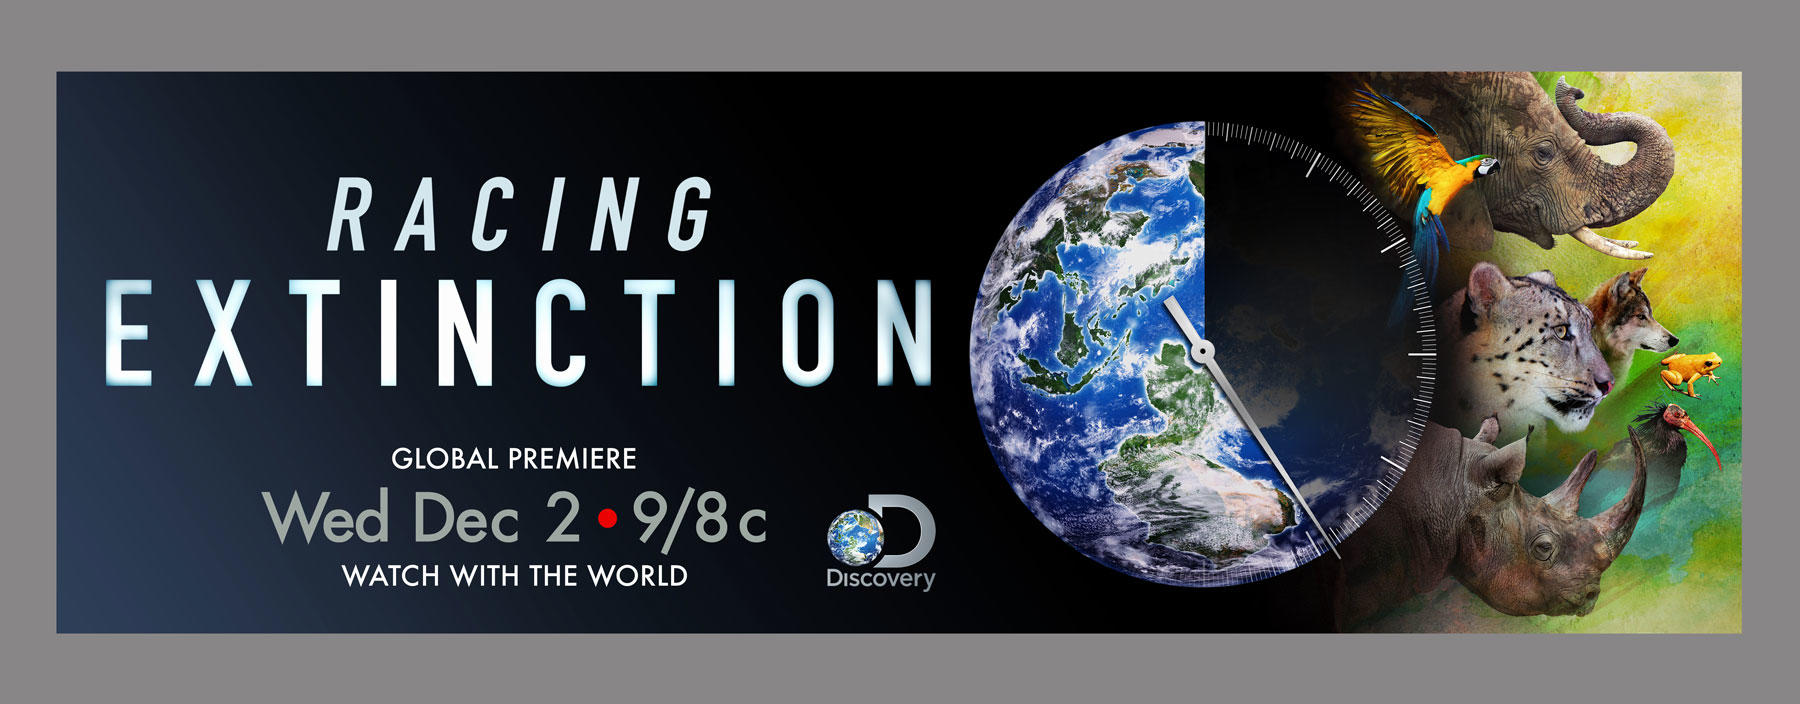 Racing Extinction horizontal key art